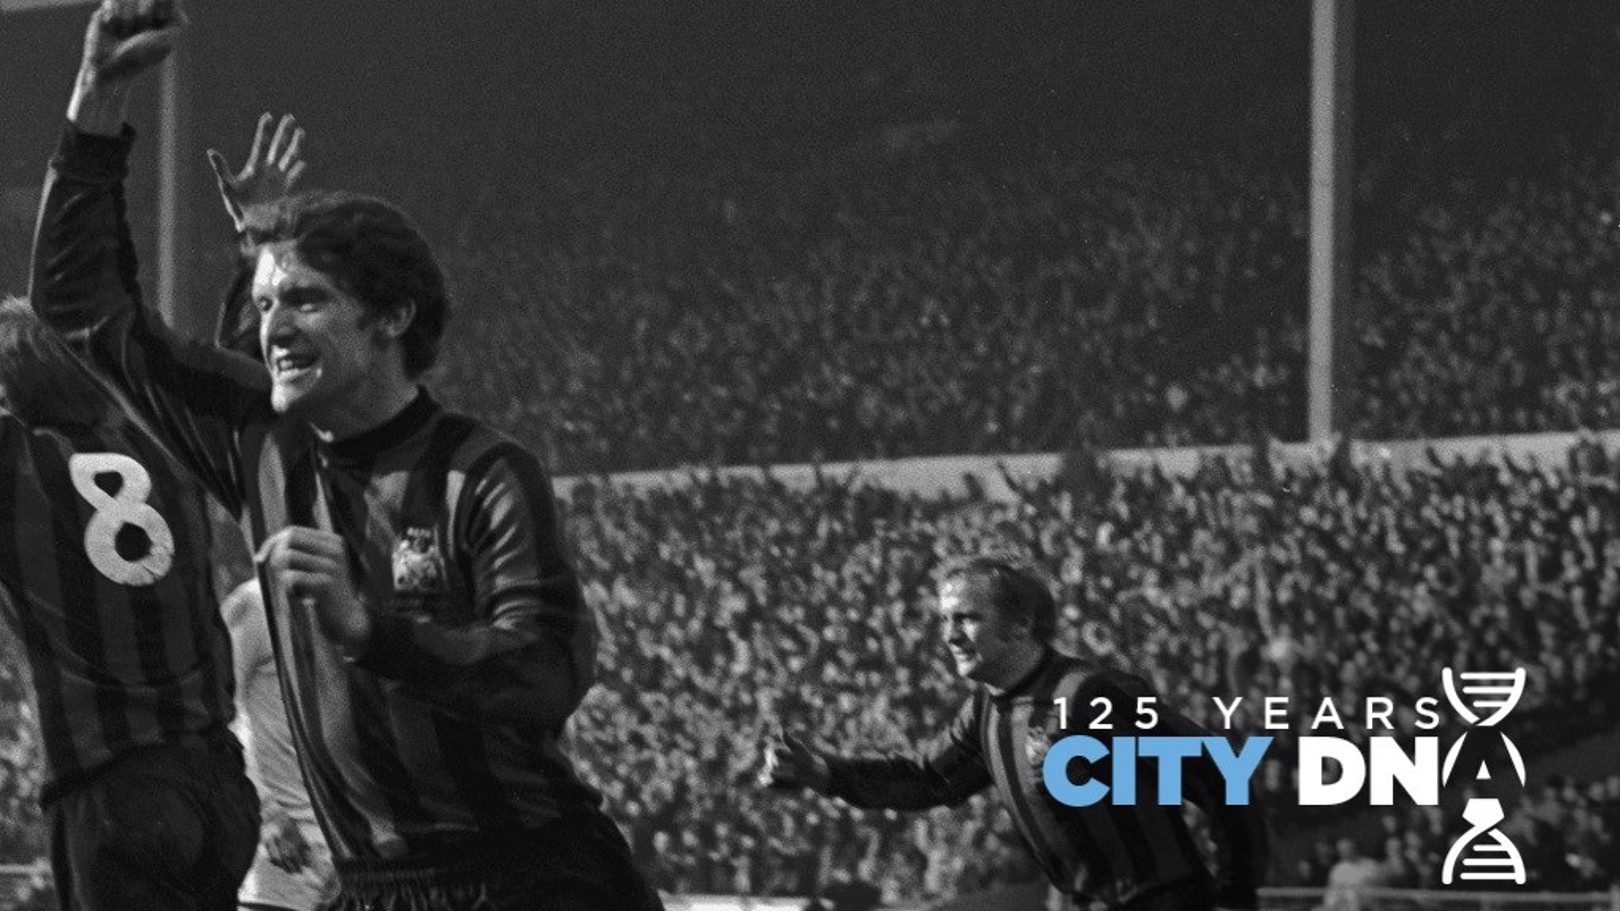 City DNA #12: The man who bled sky blue